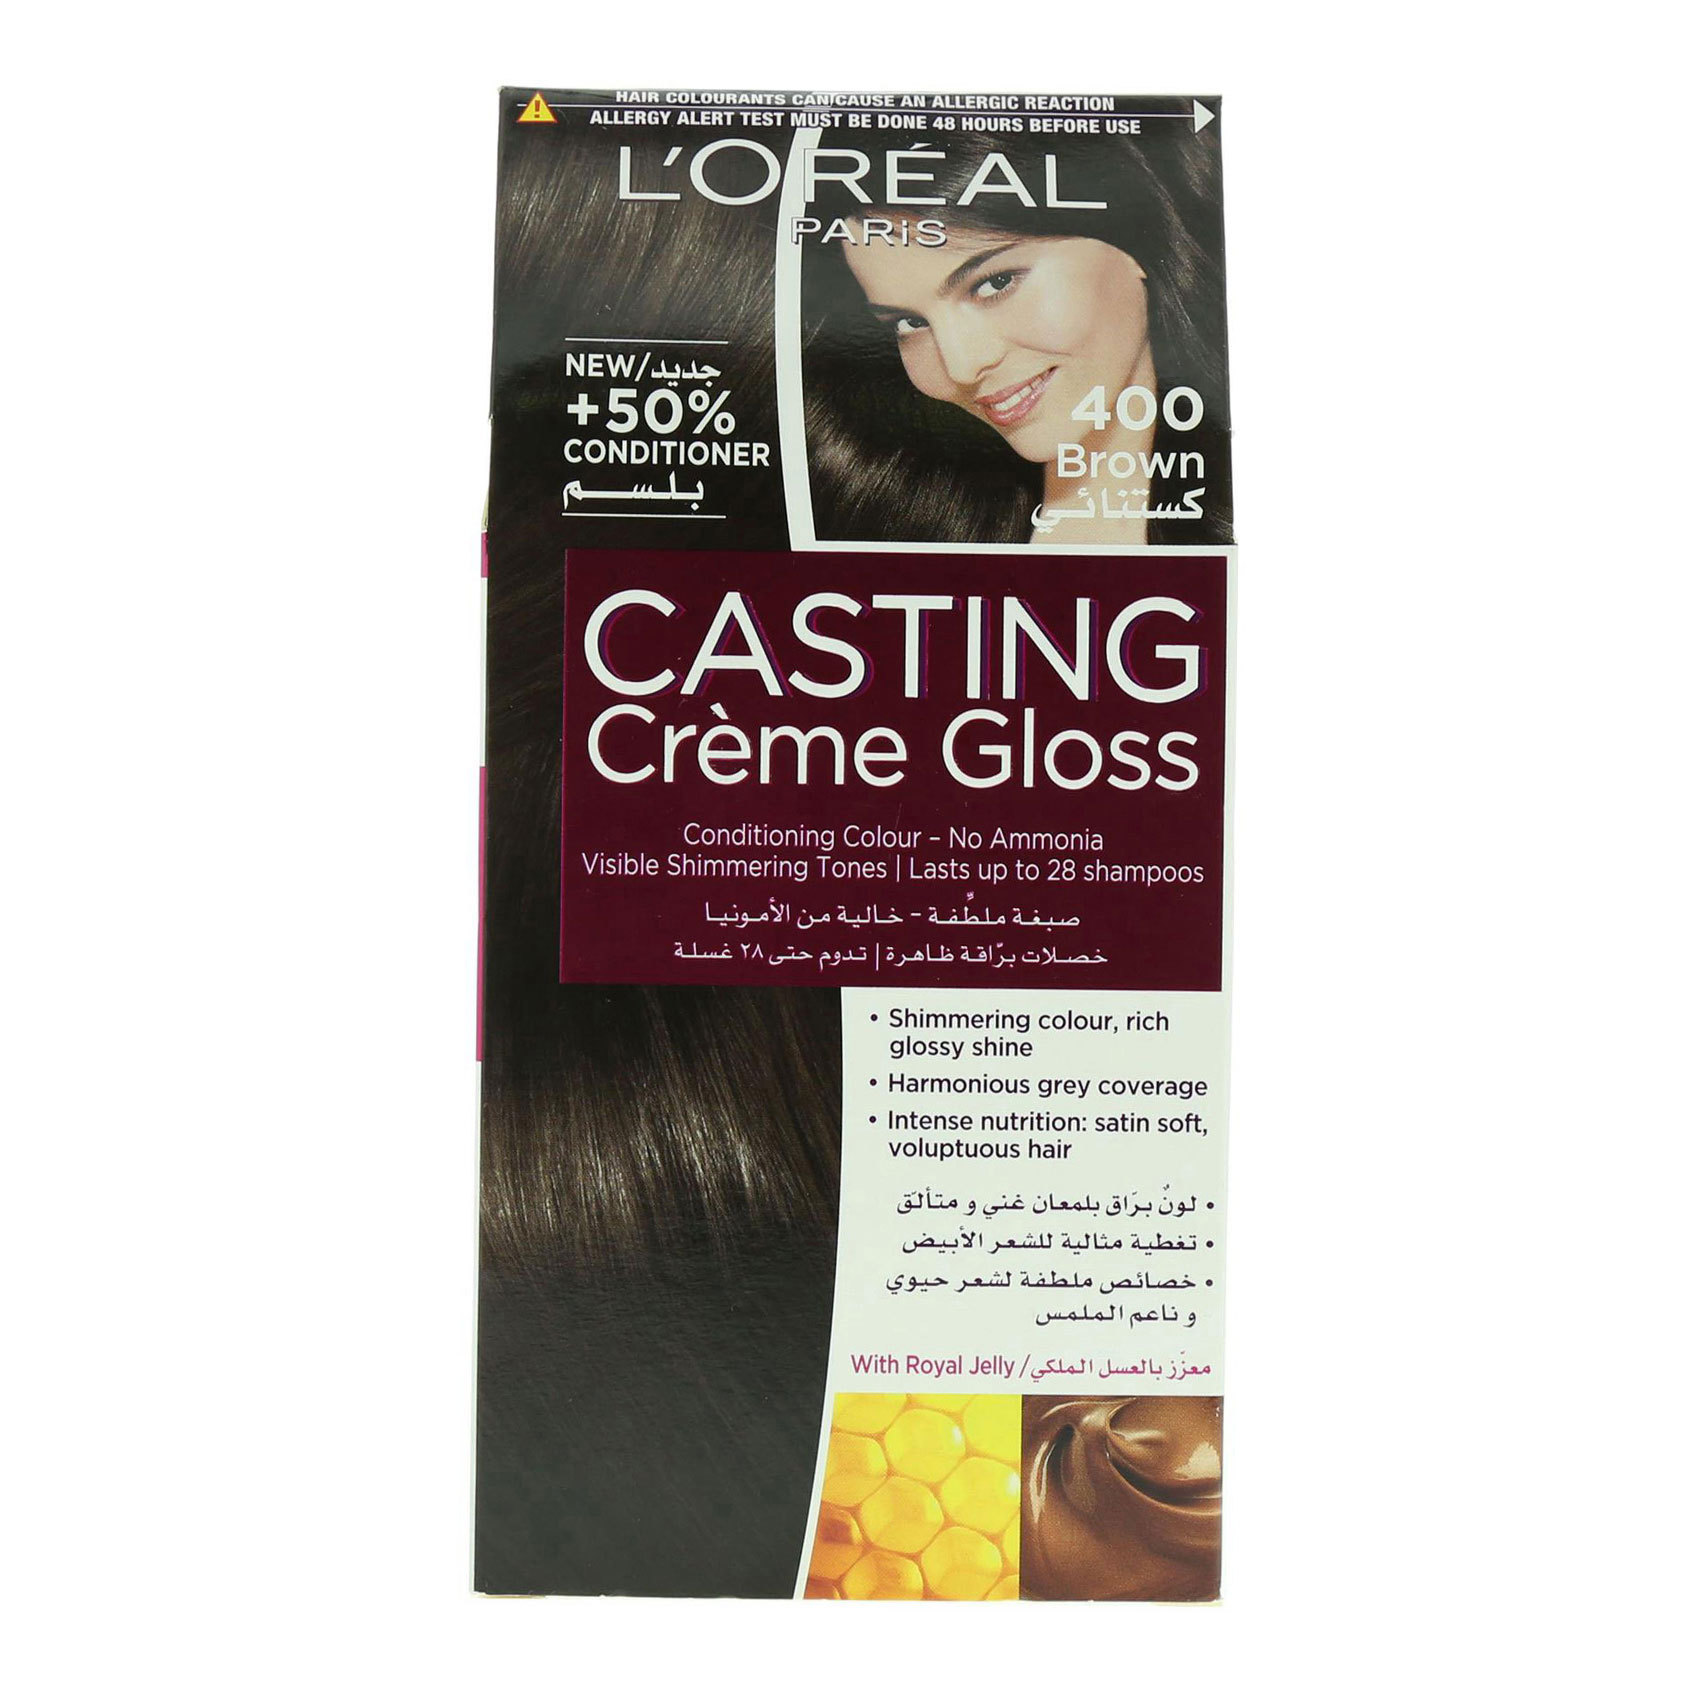 CASTING CREAM GLOSS 400 BROWN